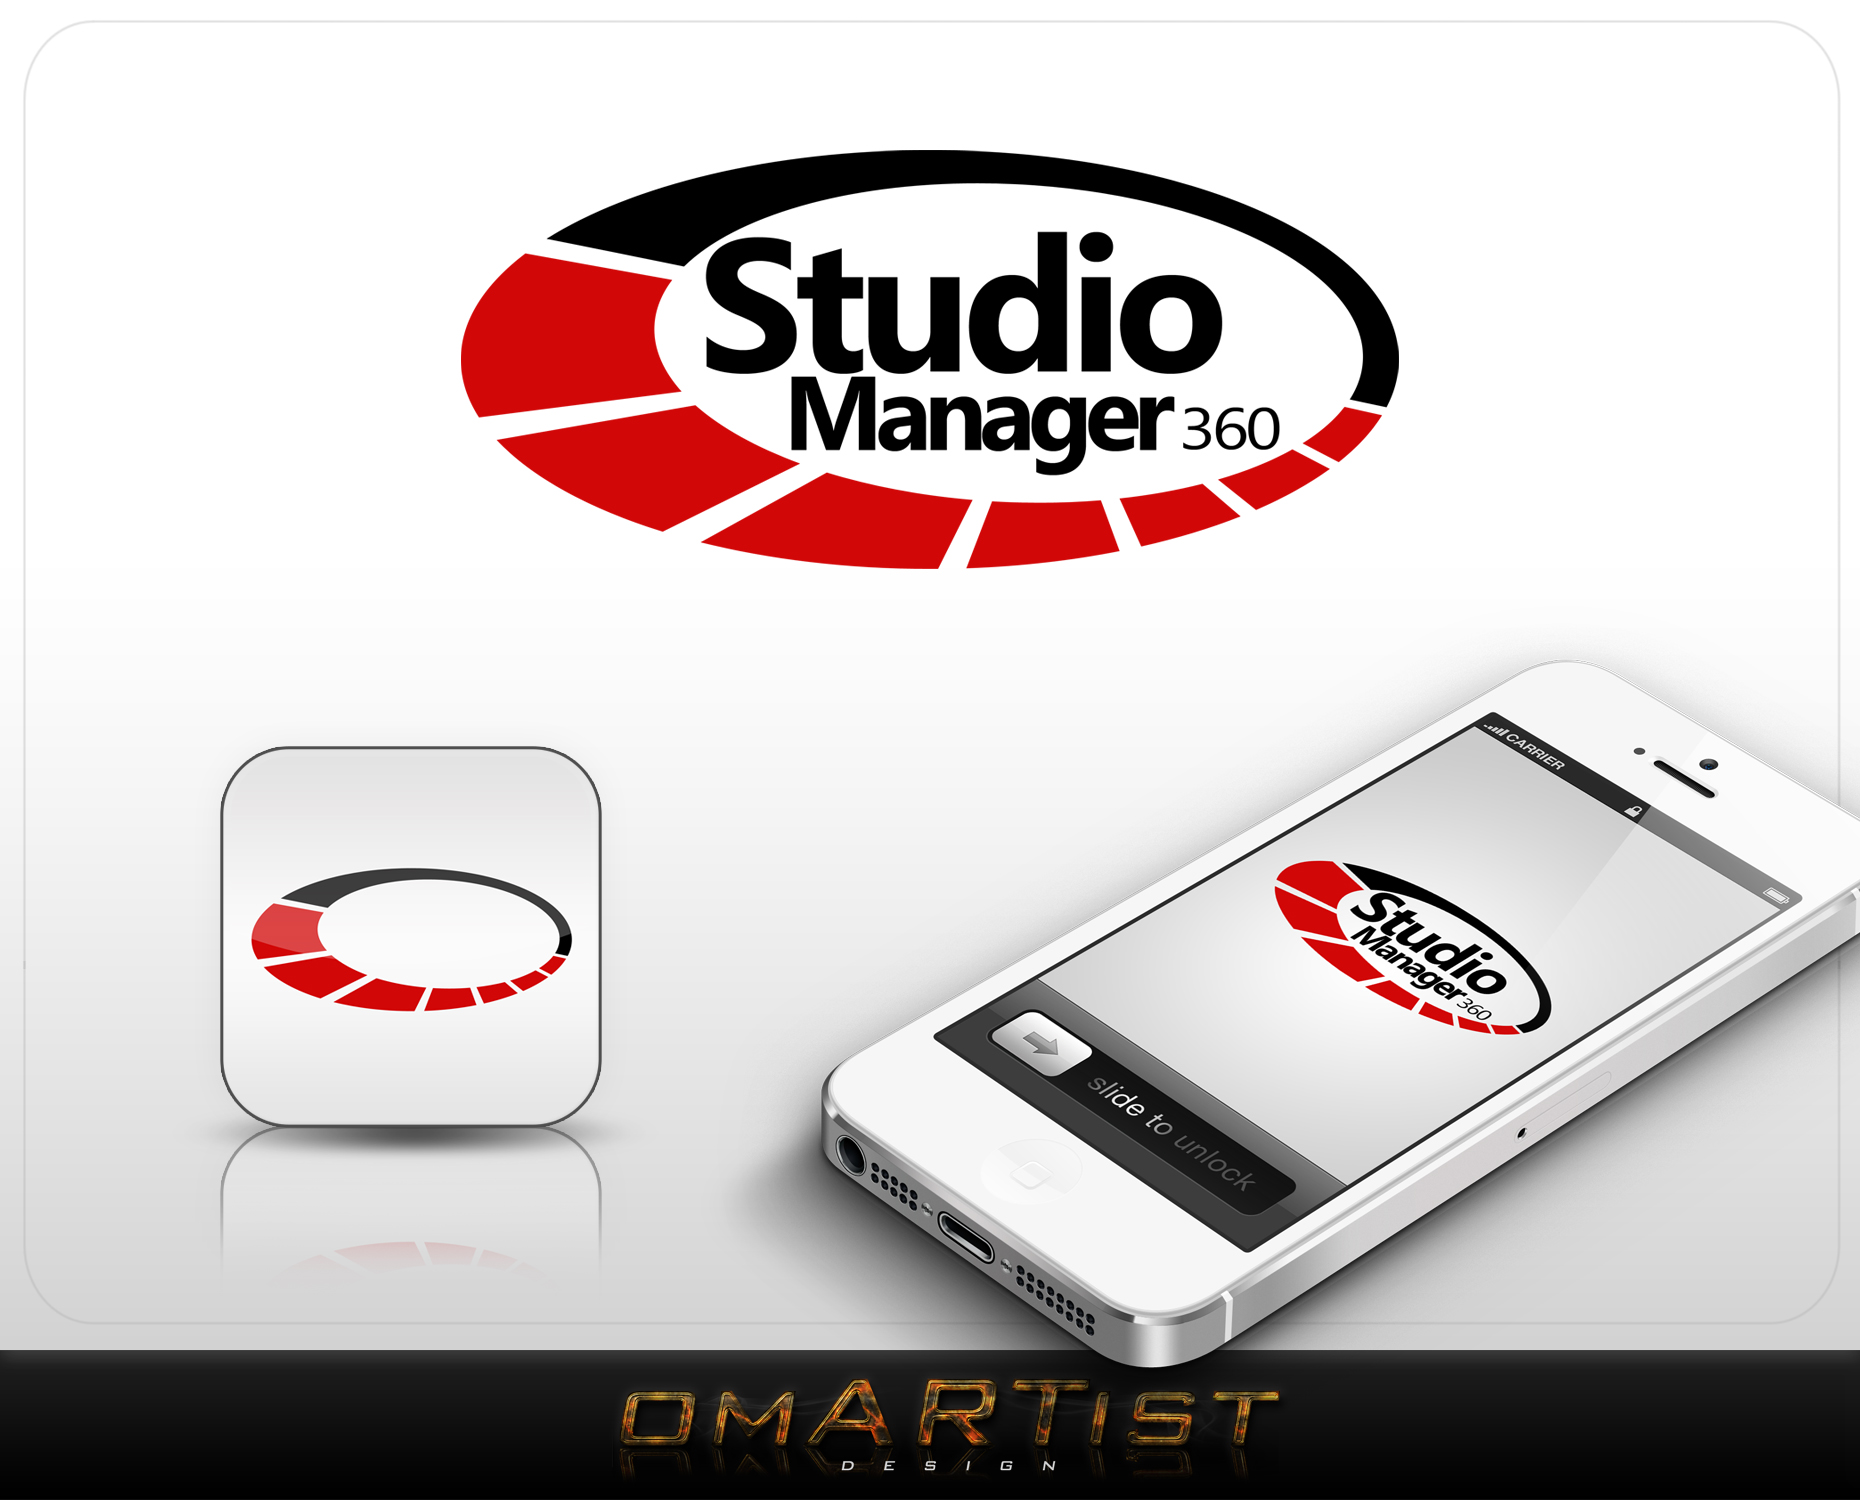 Logo Design by omARTist - Entry No. 173 in the Logo Design Contest Unique Logo Design Wanted for Studio Manager 360.